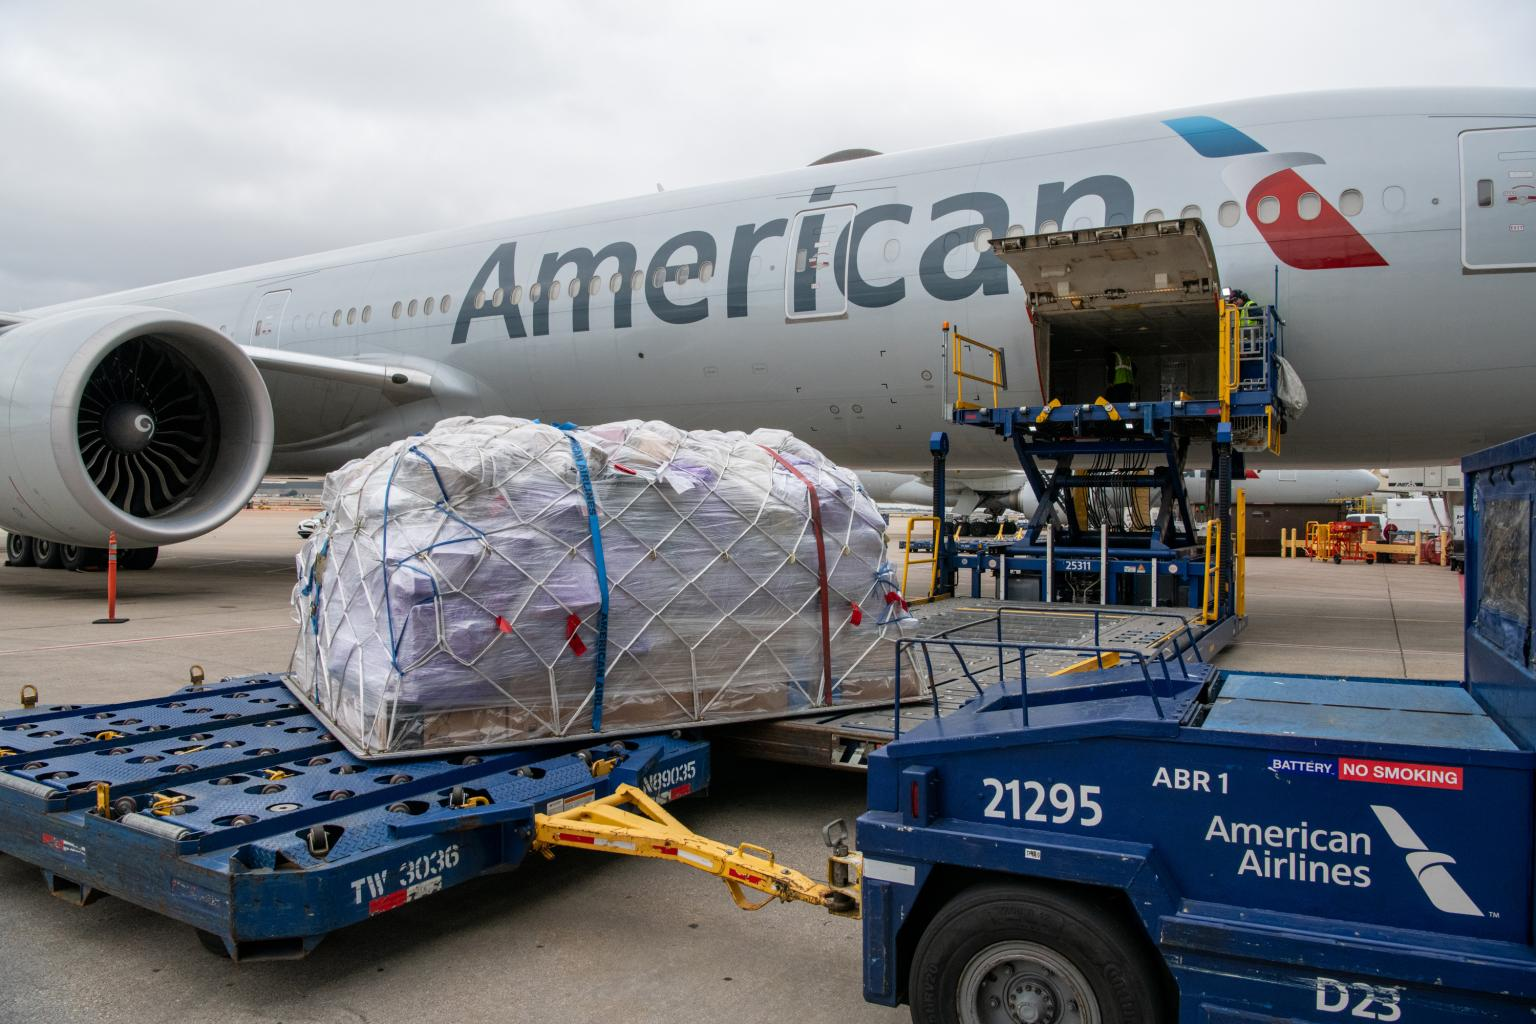 American Airlines first cargo-only flight taking off from Dallas Fort Worth International Airport bound for Frankfurt in Germany